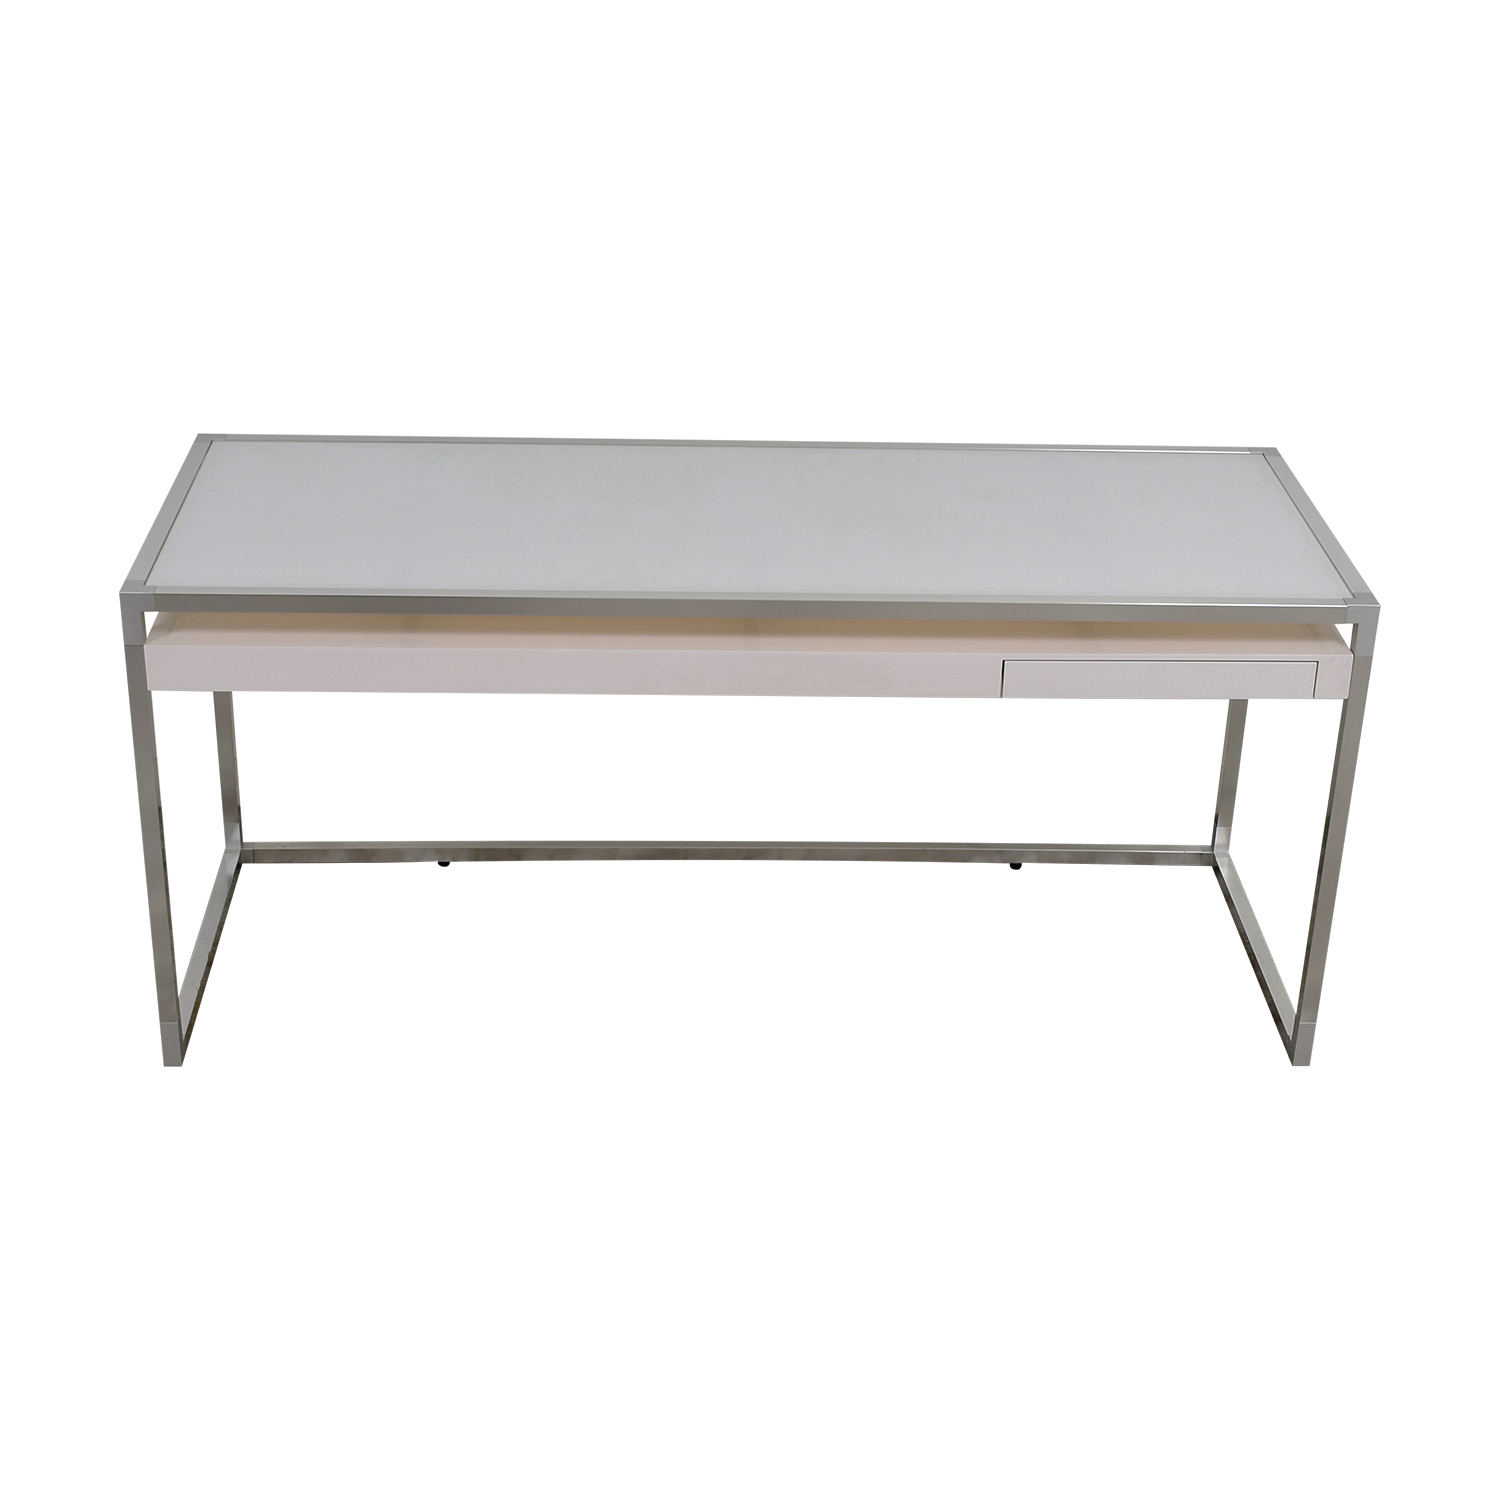 Ligne Roset Ligne Roset White and Grey Dining Table second hand